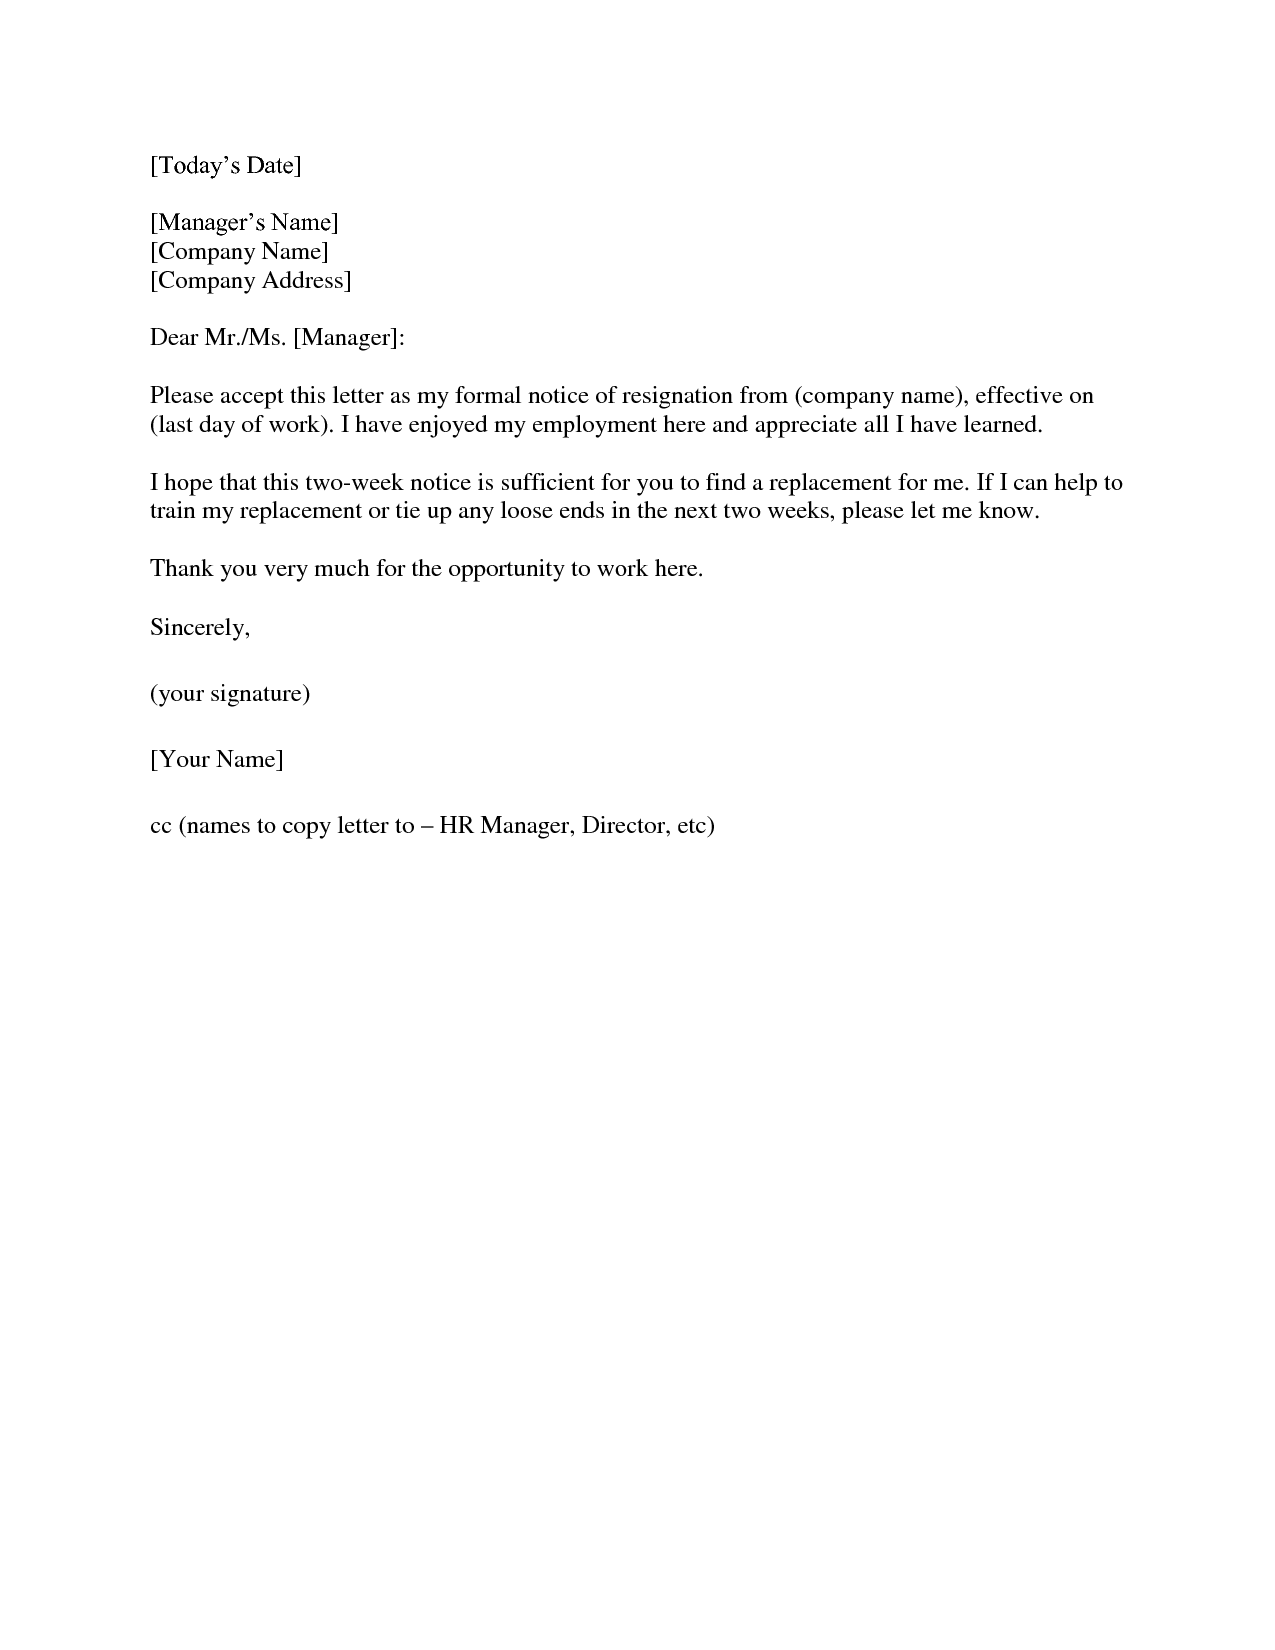 letter of resignation 2 weeks notice nurse 2 weeks notice letter resignation letter 2 week notice 23071 | e1681886d0d9e053bf247bbbefbb3b80